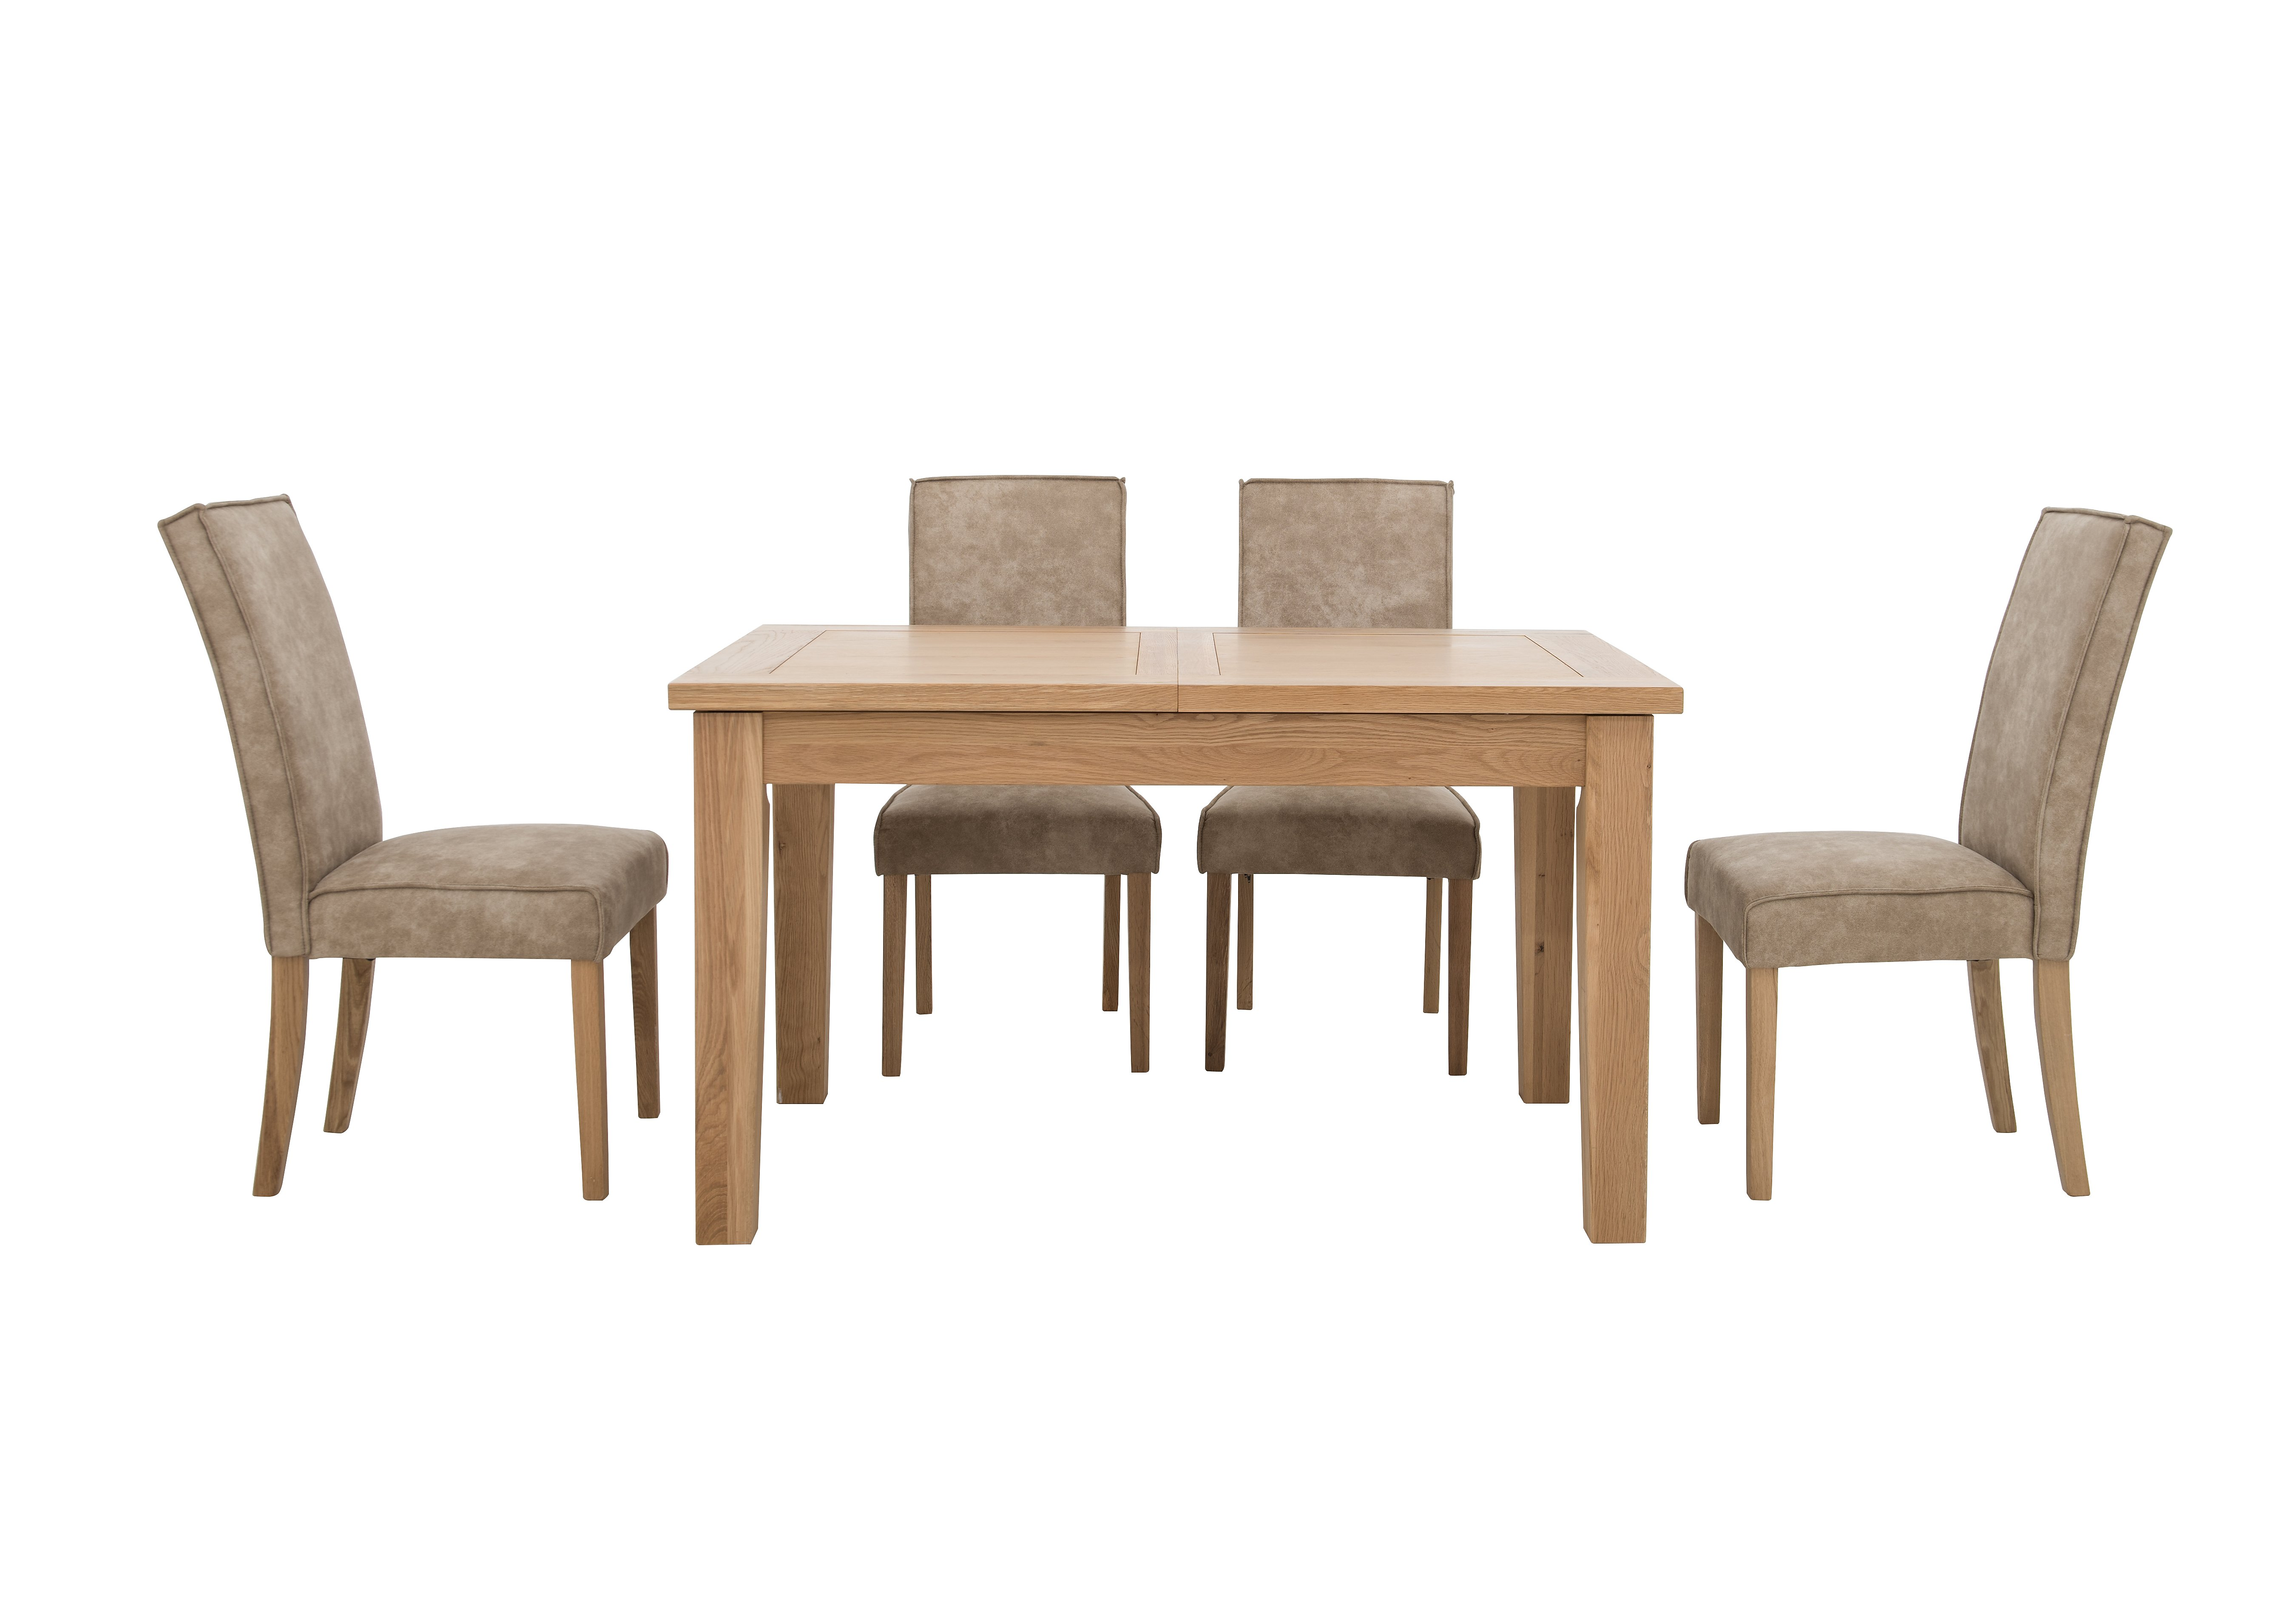 Oak dining tables & chairs Furniture Village